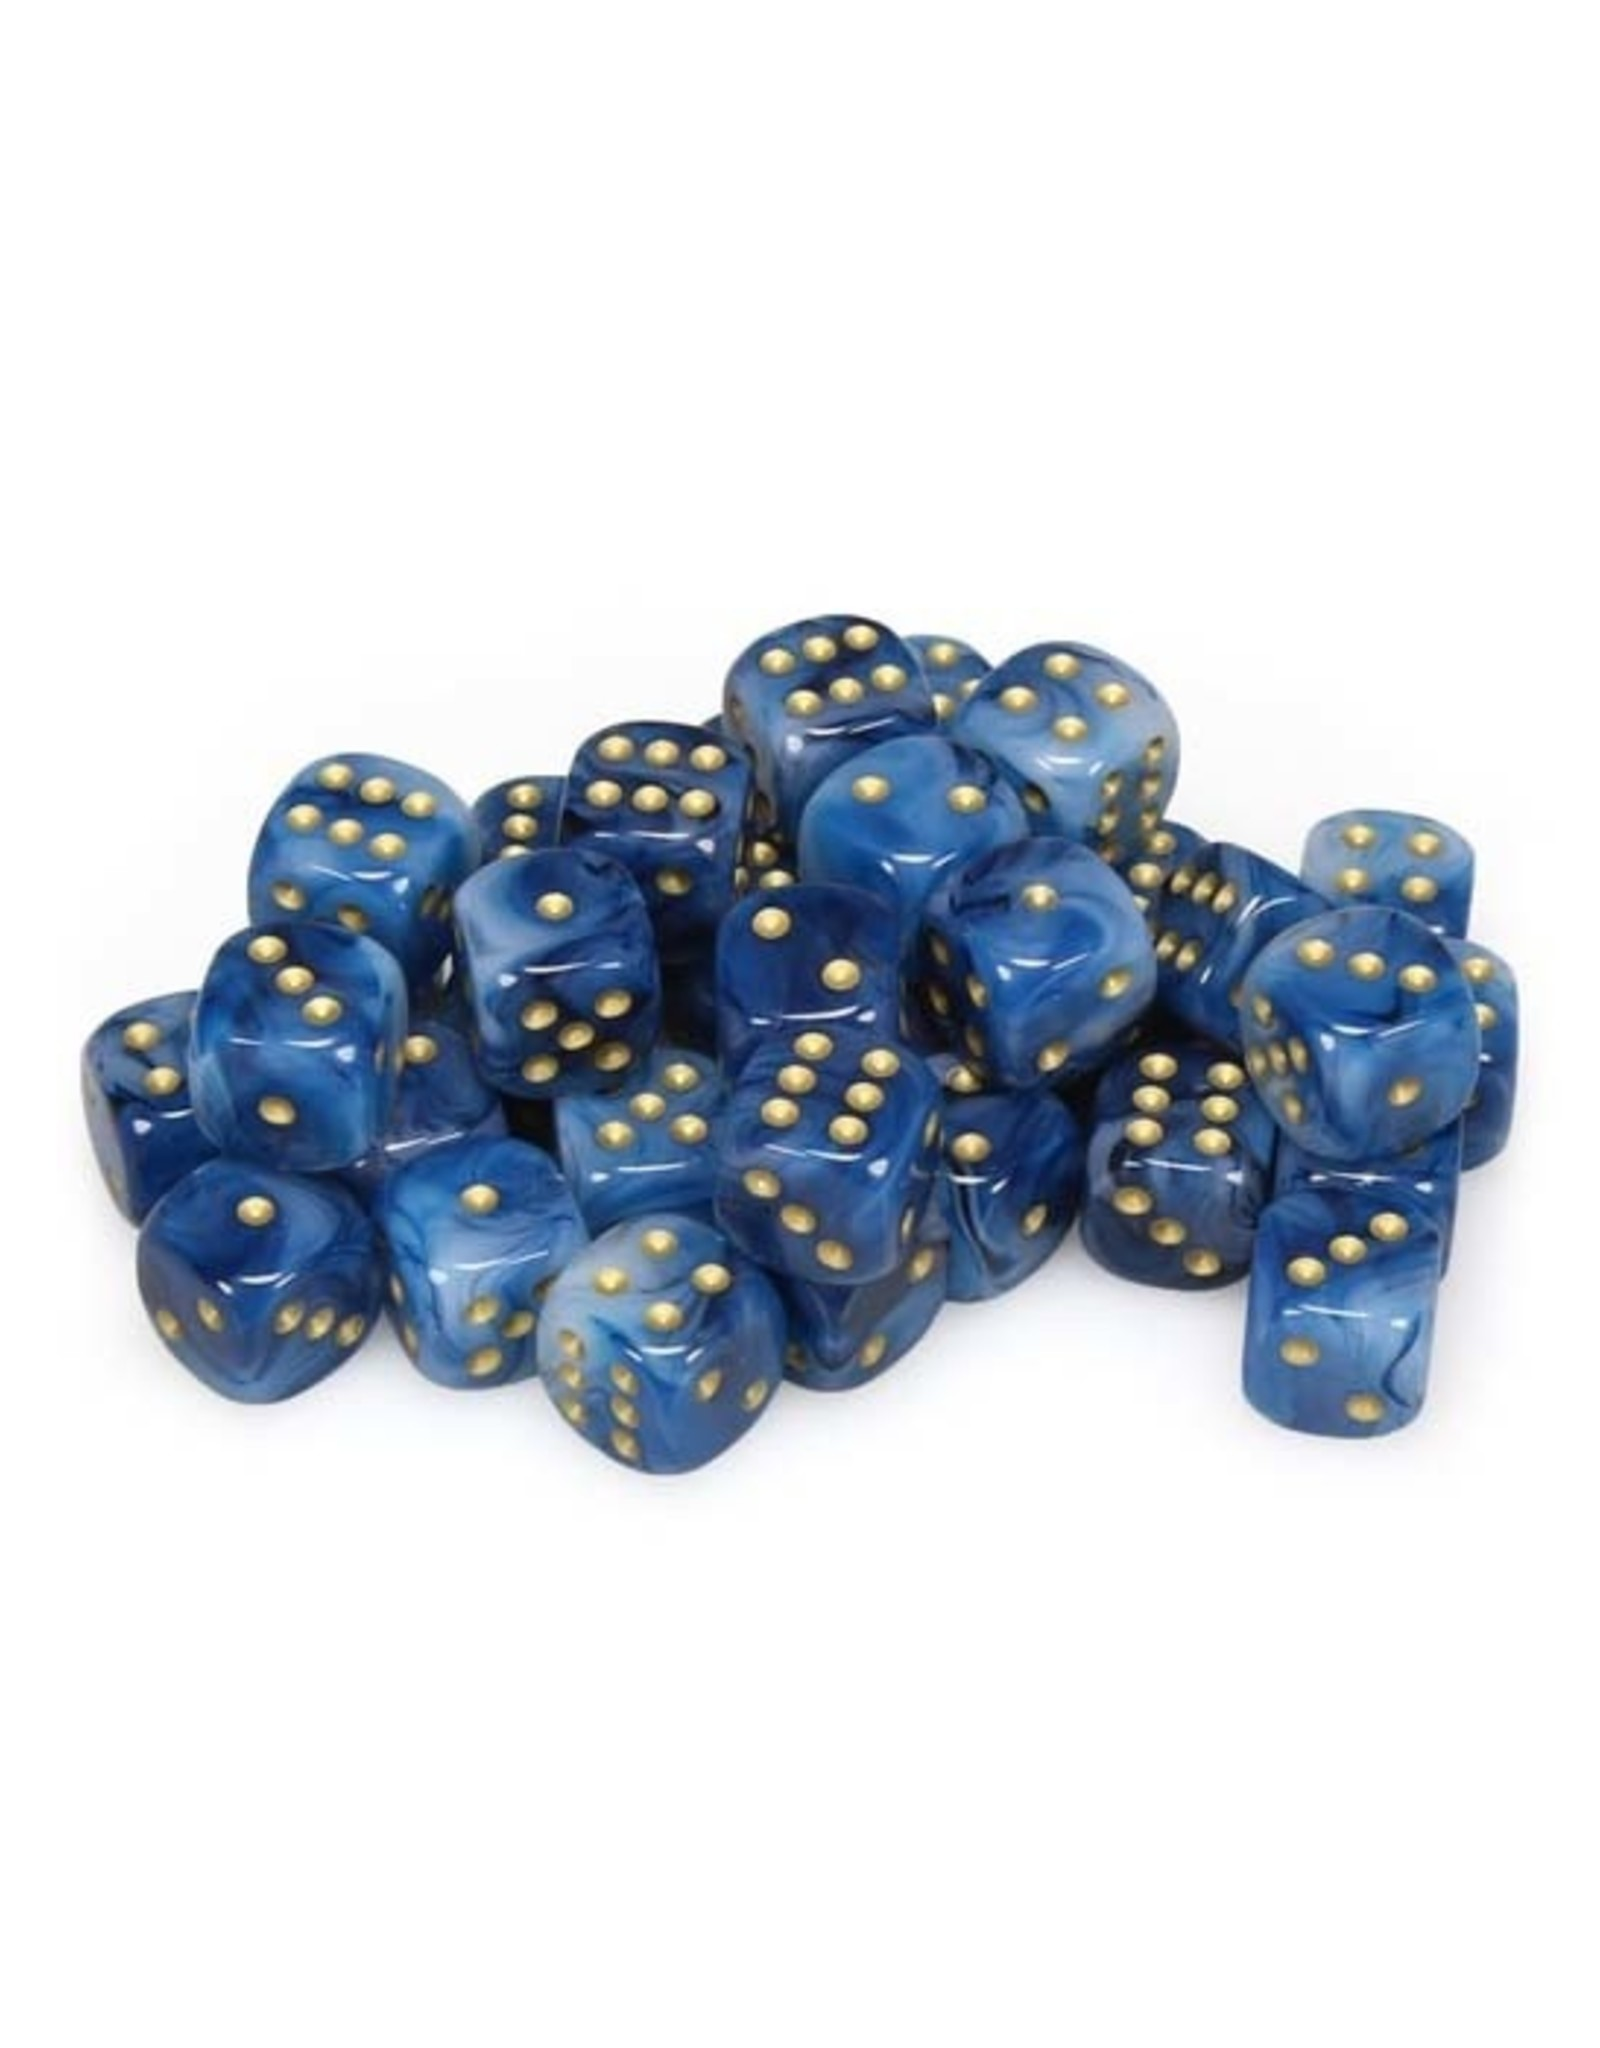 Chessex Chessex: 12mm D6 - Phantom - Teal w/ Gold